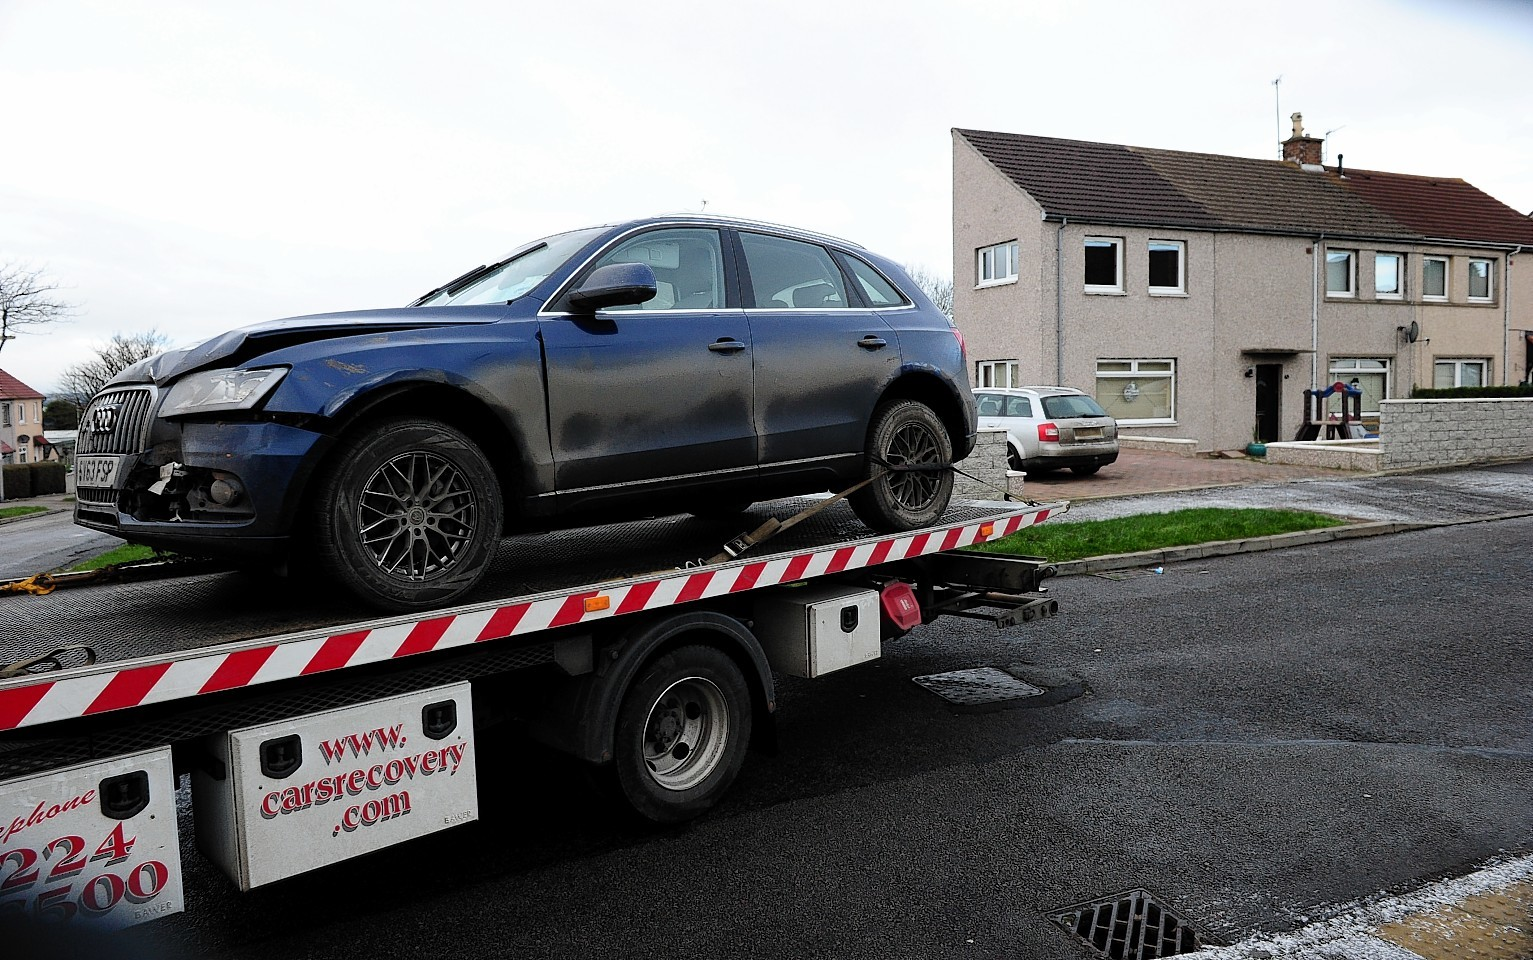 The Audi 4x4 recovered near Byron Square